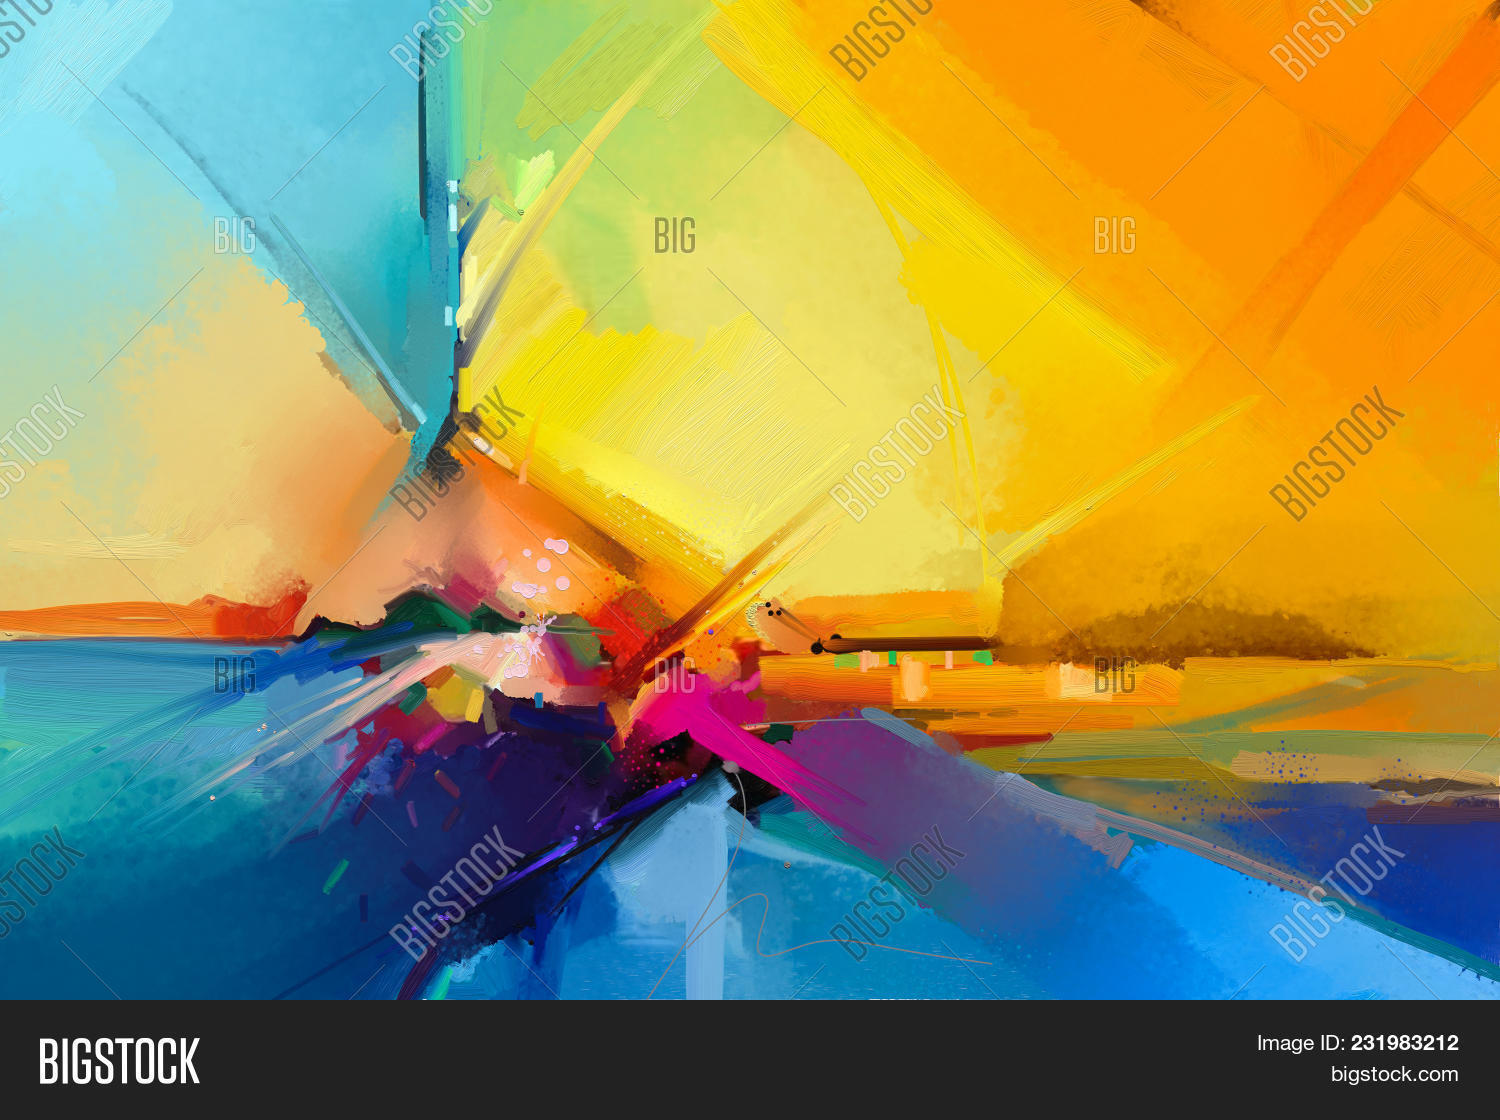 abstract,acrylic,art,artist,artistic,artwork,background,blue,bright,brush,brushstroke,canvas,color,colorful,contemporary,creative,decoration,decorative,design,drawing,element,green,hand,illustration,impressionism,landscape,media,modern,nature,oil,paint,painted,painter,painting,palette,paper,picture,red,semi,shape,sky,stroke,summer,sunlight,sunrise,texture,vibrant,vivid,wall,yellow